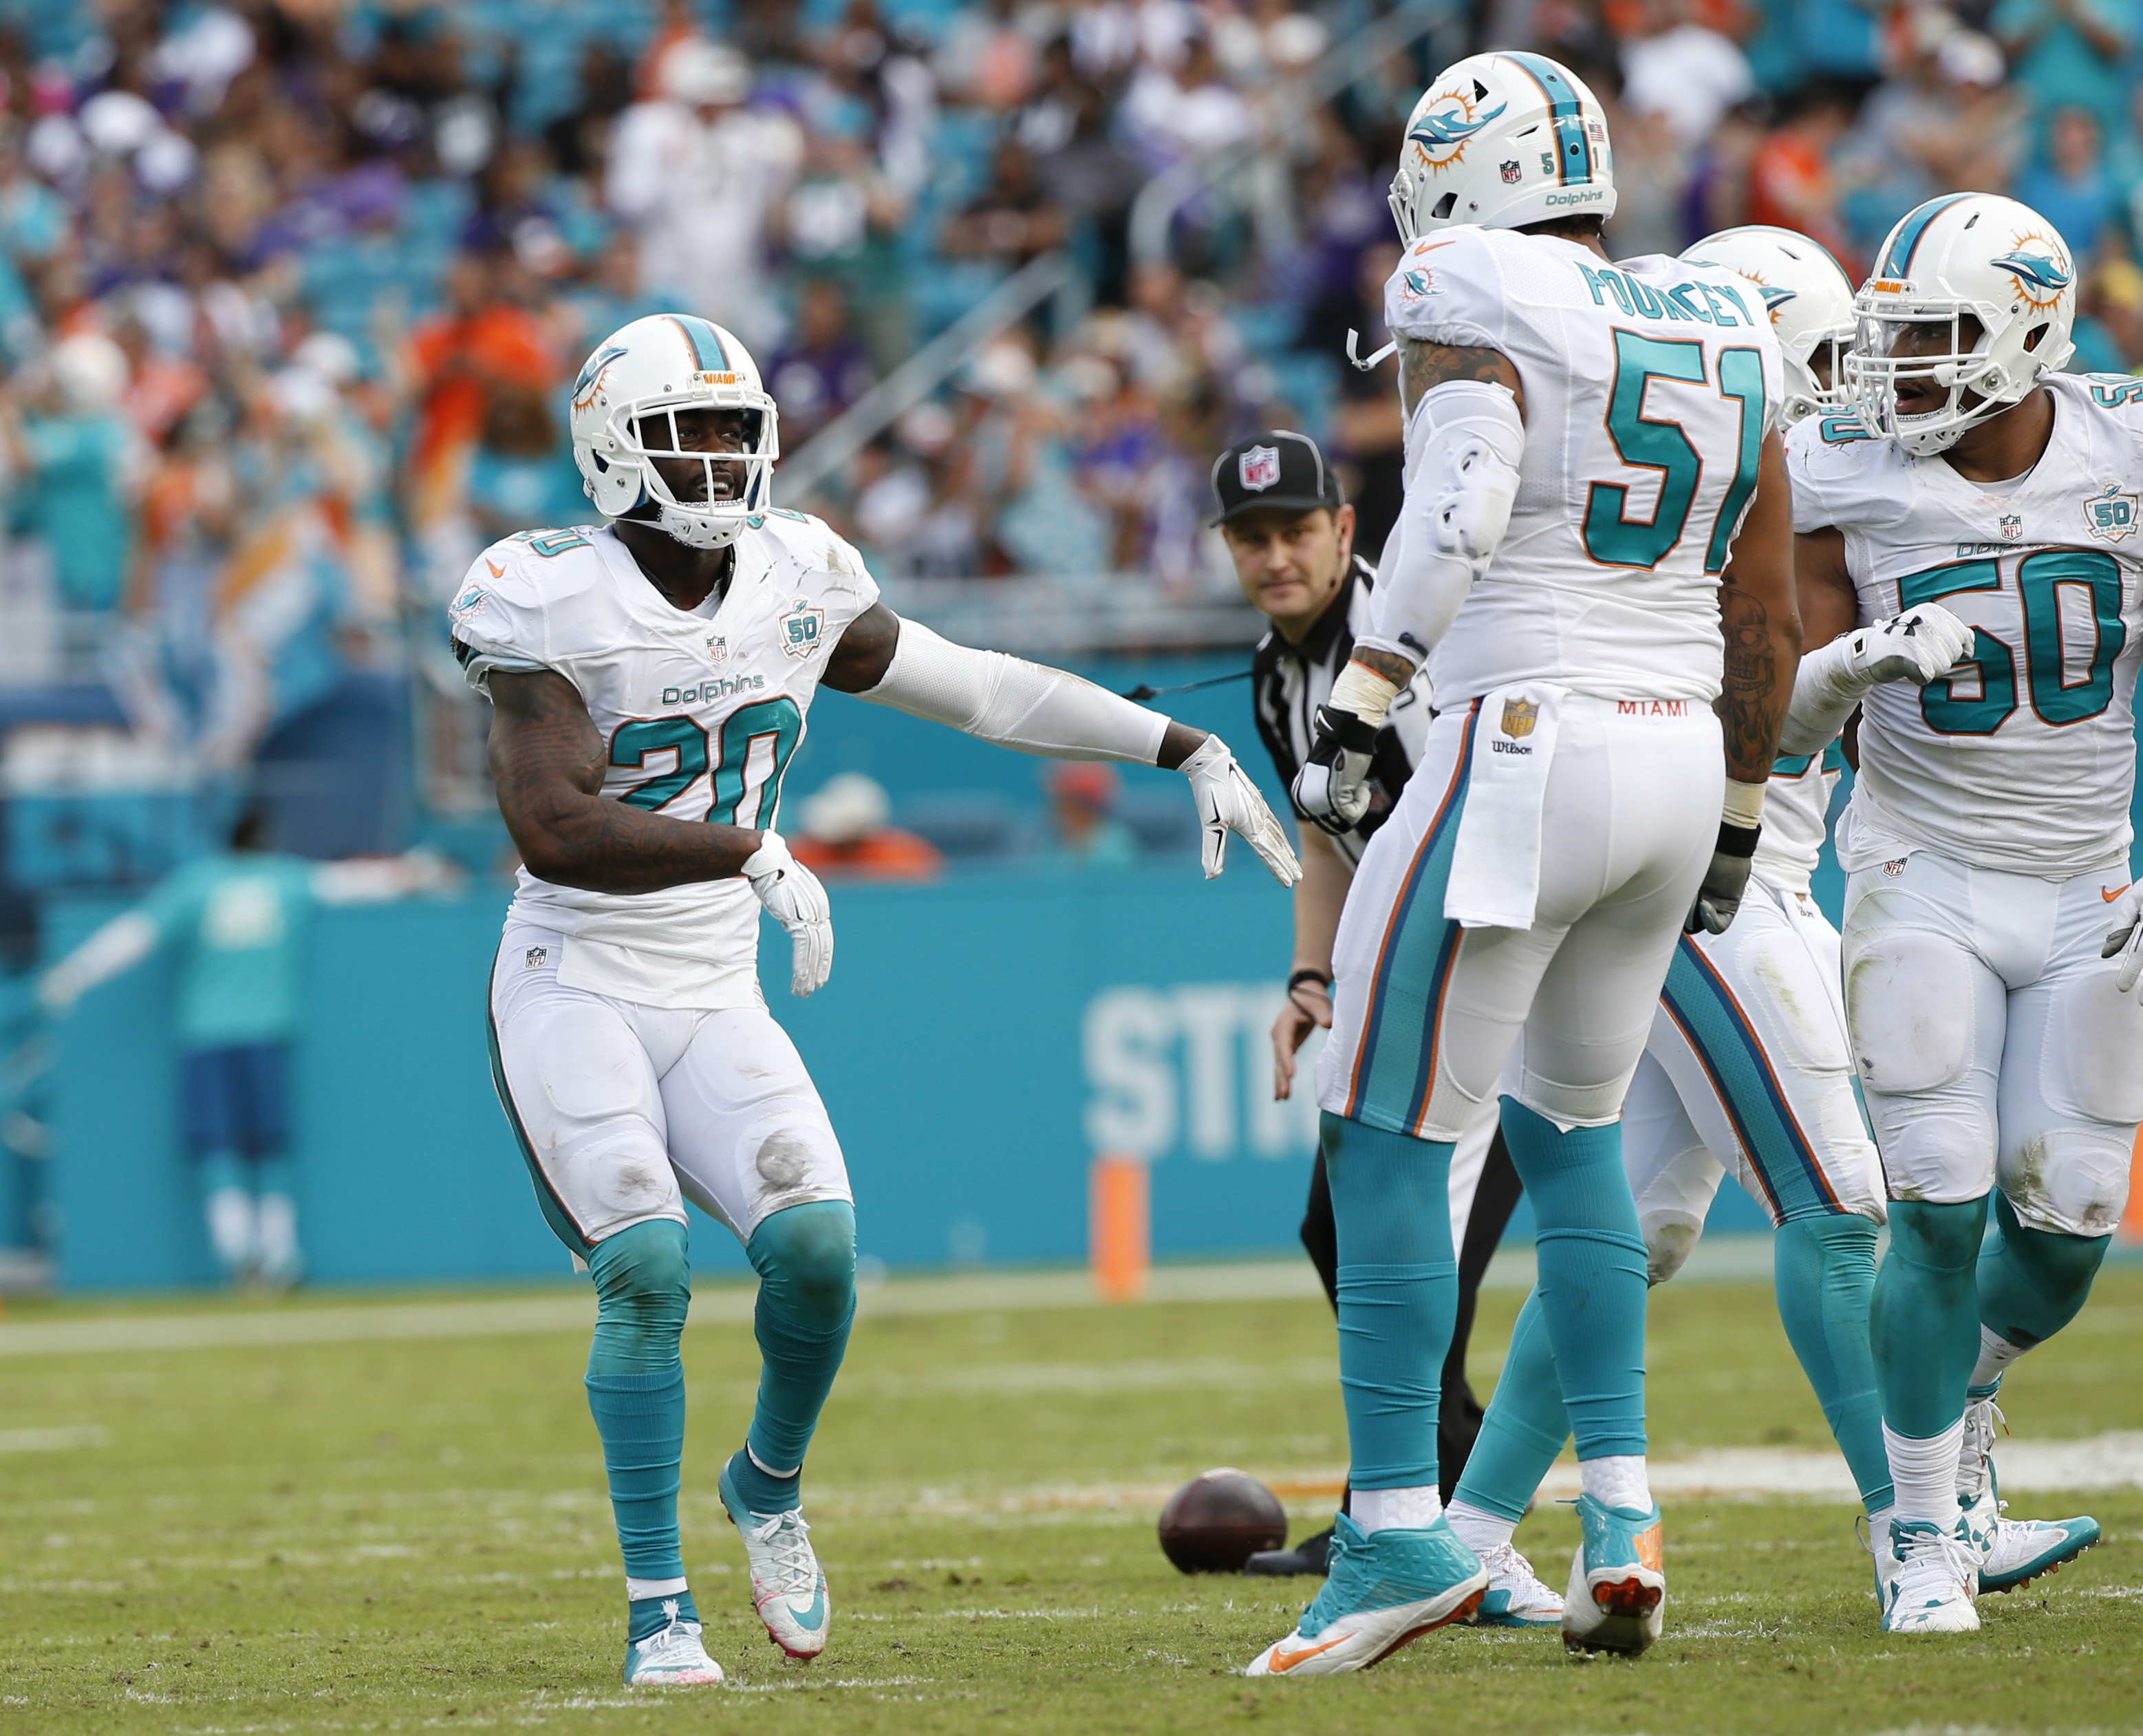 Miami Dolphins strong safety Reshad Jones (20) dances after intercepting the ball during the first half of an NFL football game against the Baltimore Ravens, Sunday, Dec. 6, 2015, in Miami Gardens, Fla.  (AP Photo/Wilfredo Lee)